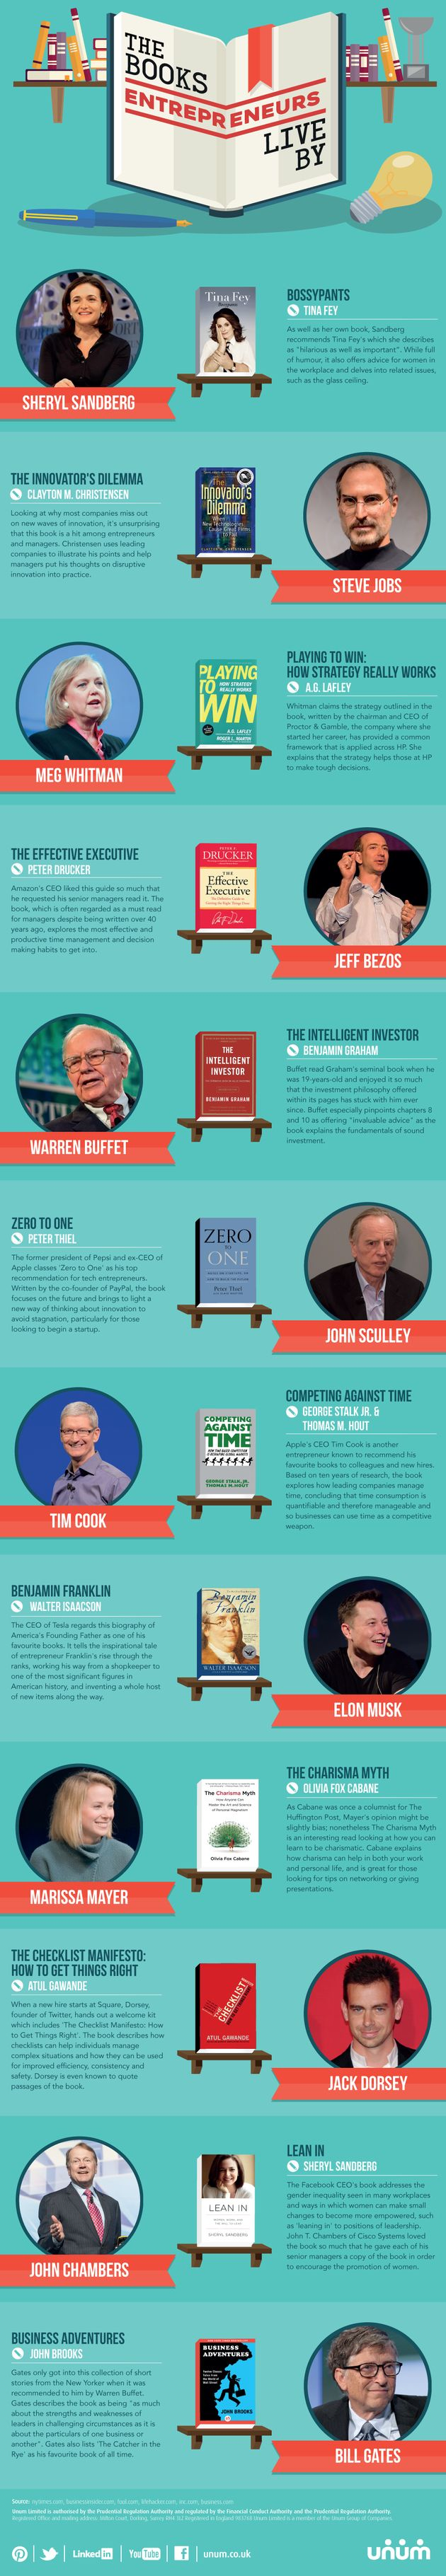 The Books Entrepreneurs Attribute To The Rise Of Their